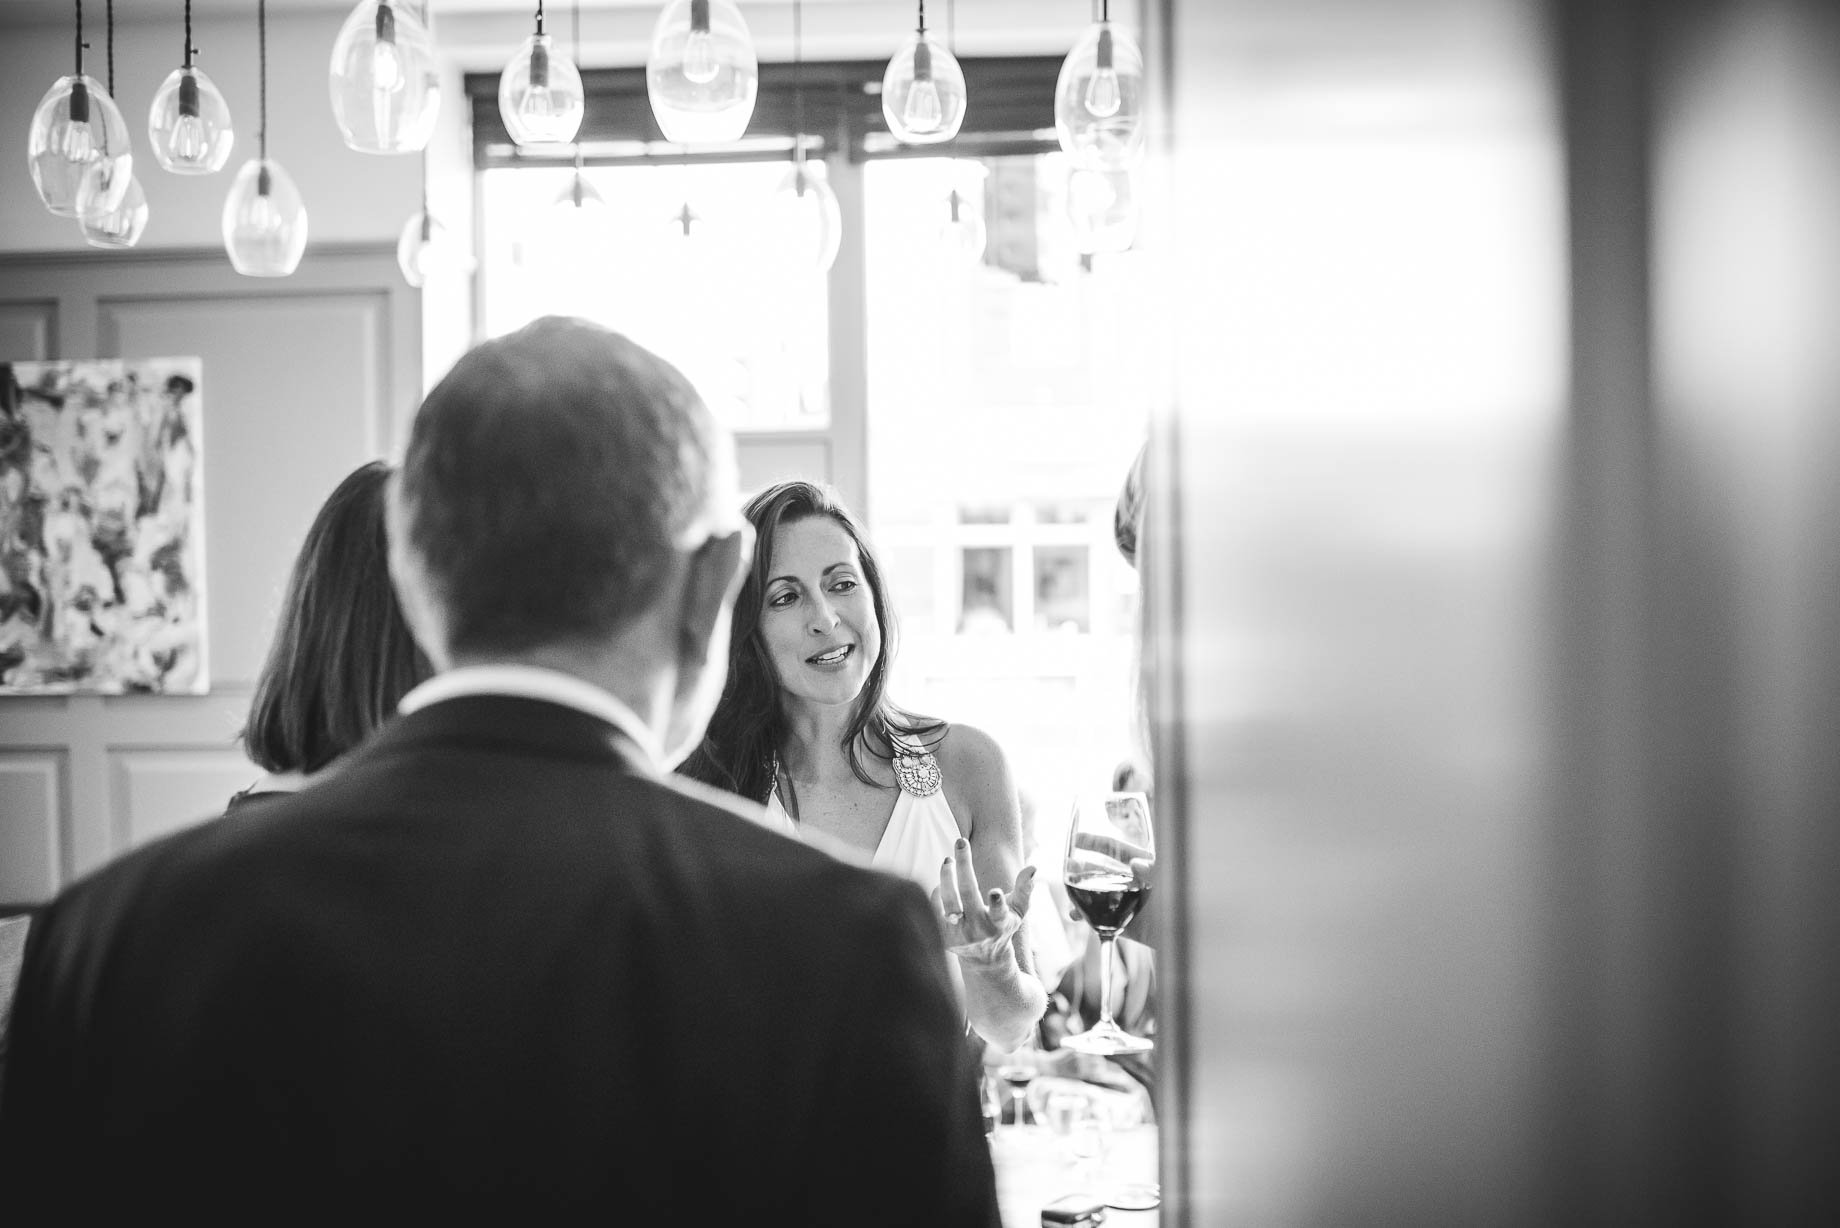 Chelsea and Mayfair wedding photography - Guy Collier - Vicki and Damien (107 of 126)